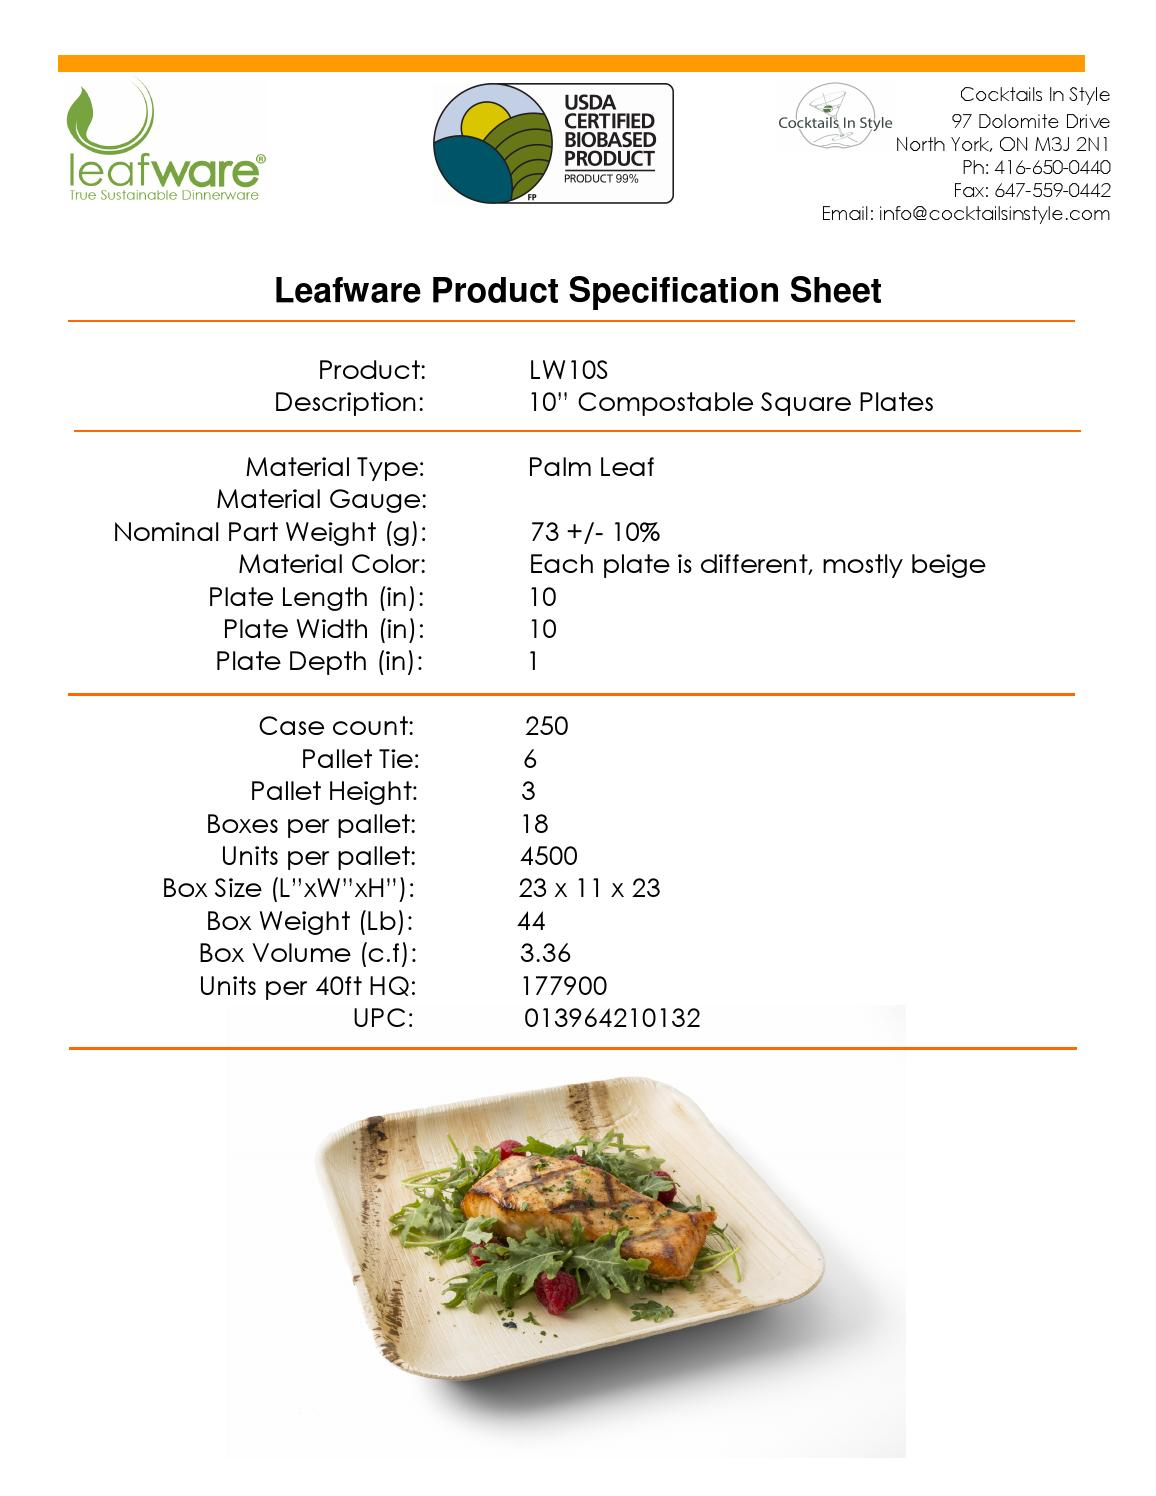 leafware product specification sheets by cocktails in. Black Bedroom Furniture Sets. Home Design Ideas